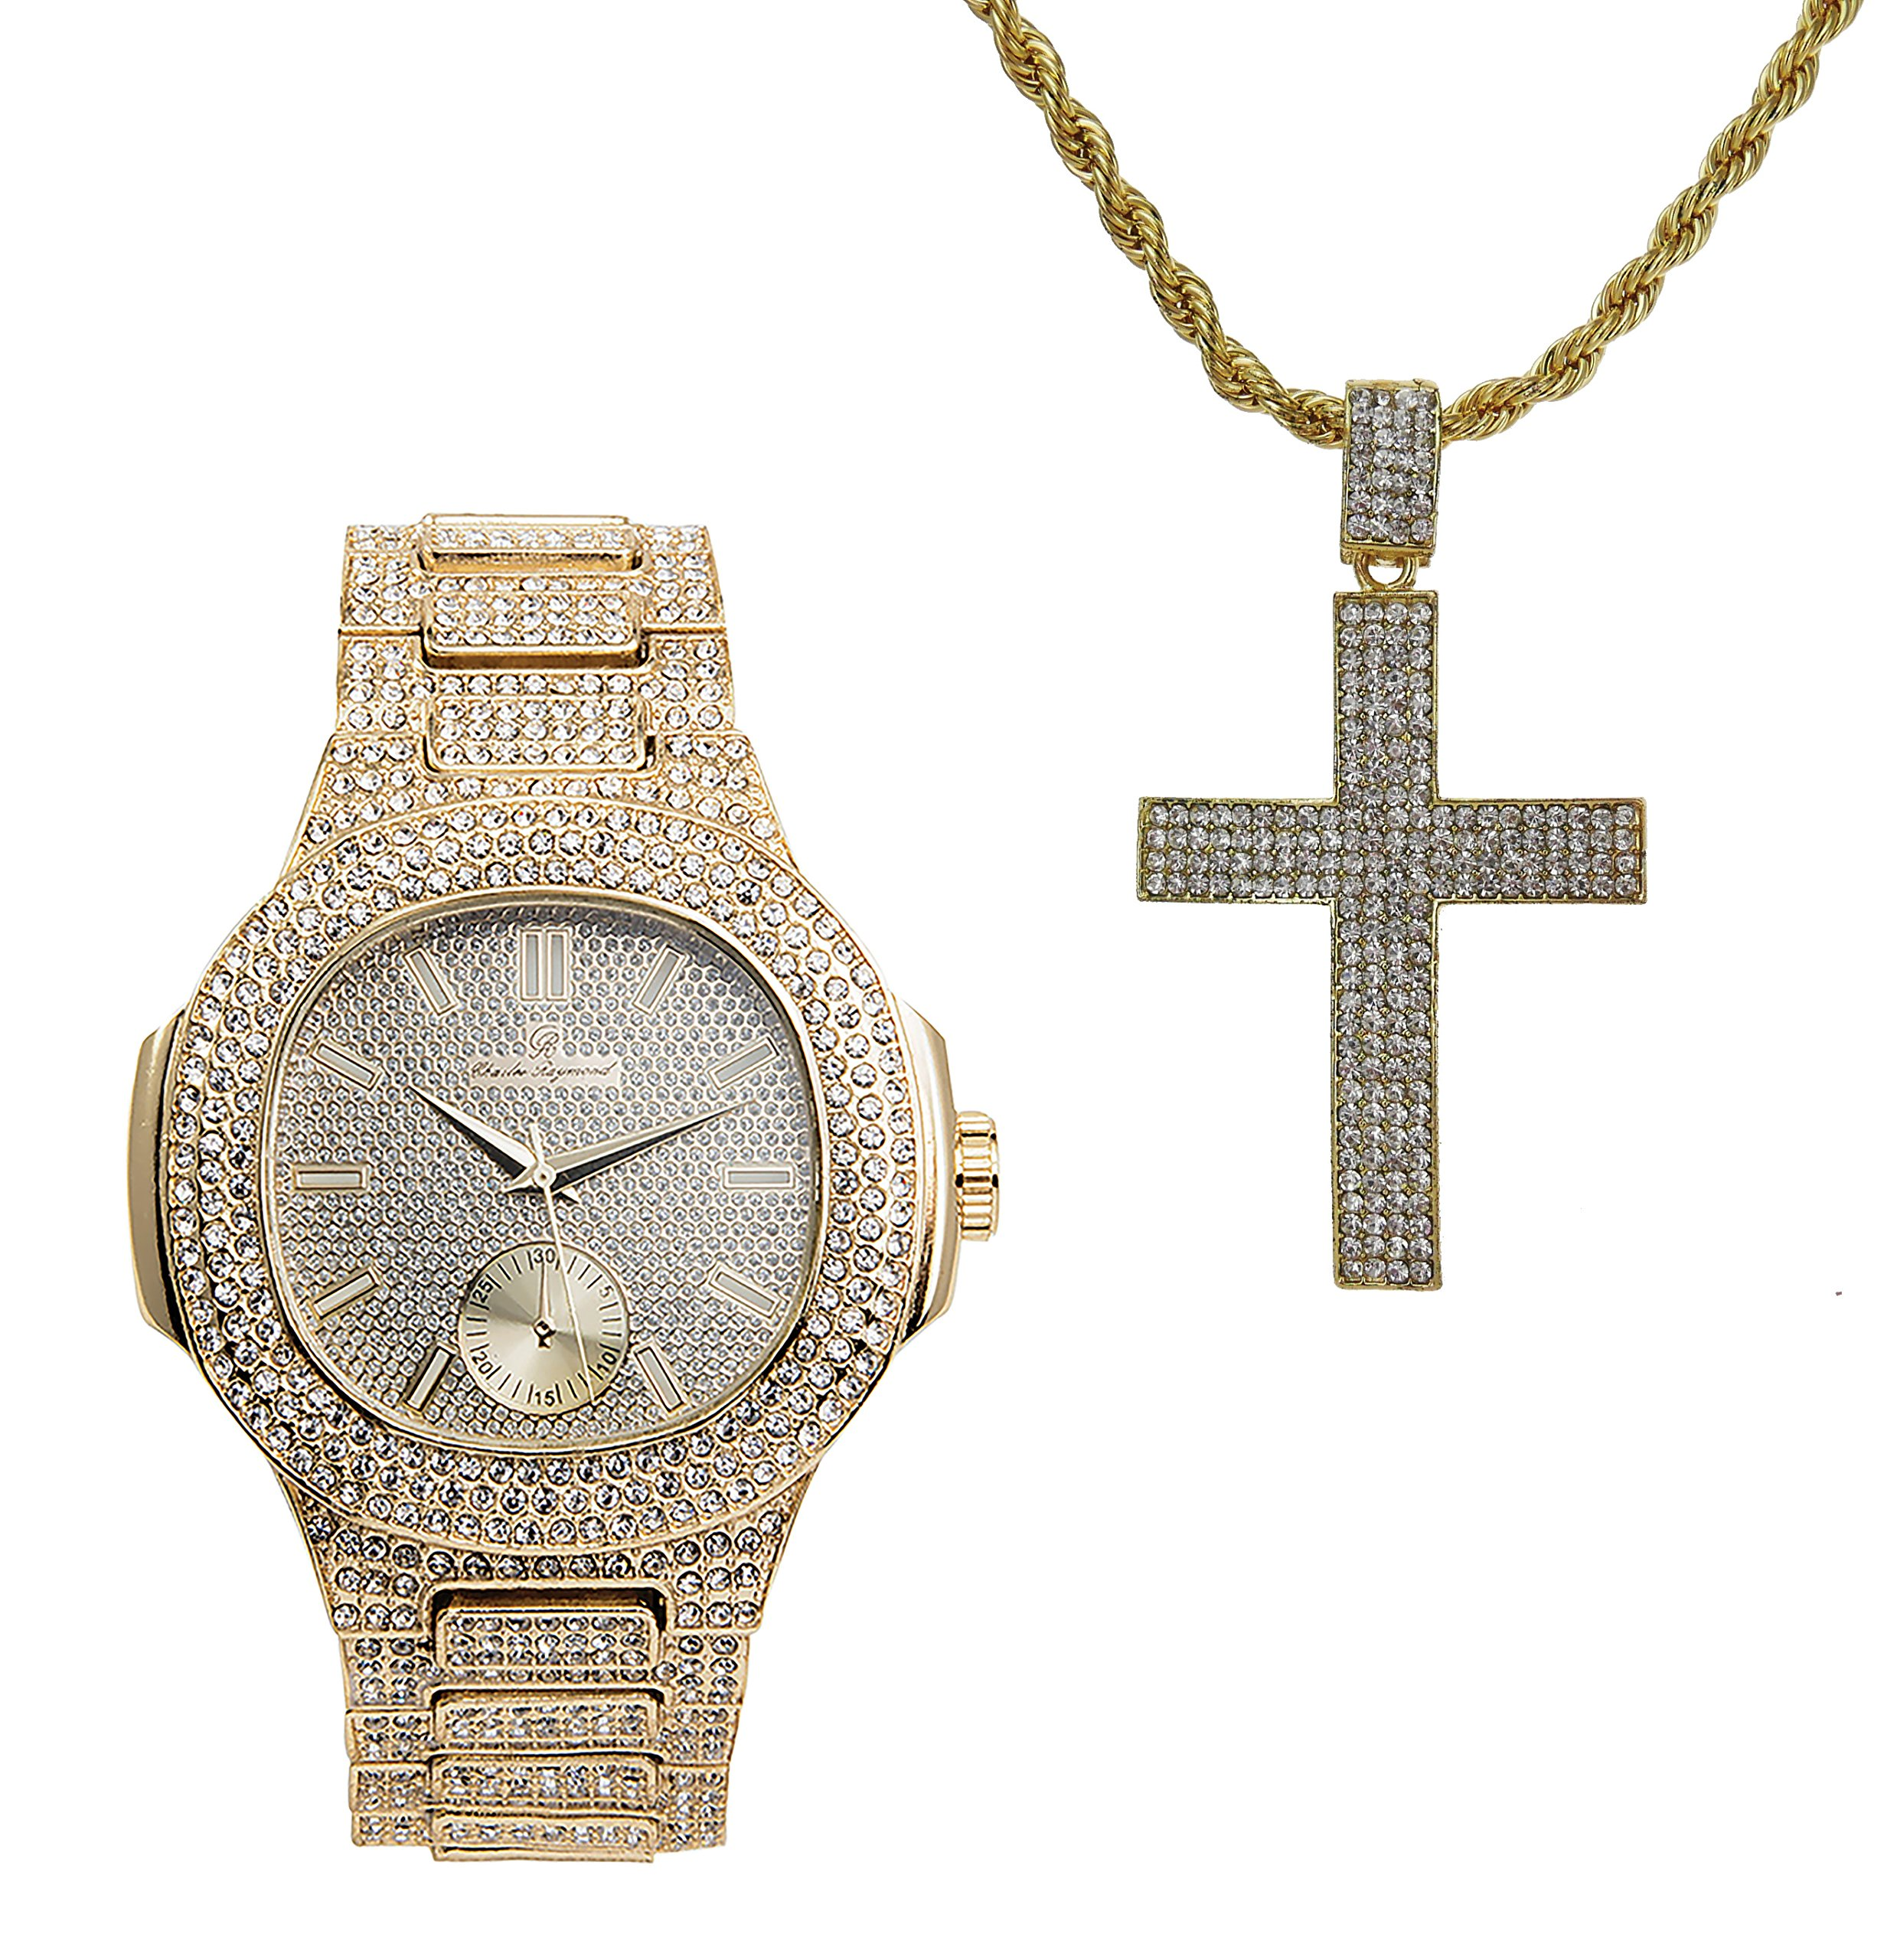 Hip Hop Ice'd Out Cross Charm on Rope Necklace with Bling Mens Watch fit for a King!! 8475-SSS42 Gold